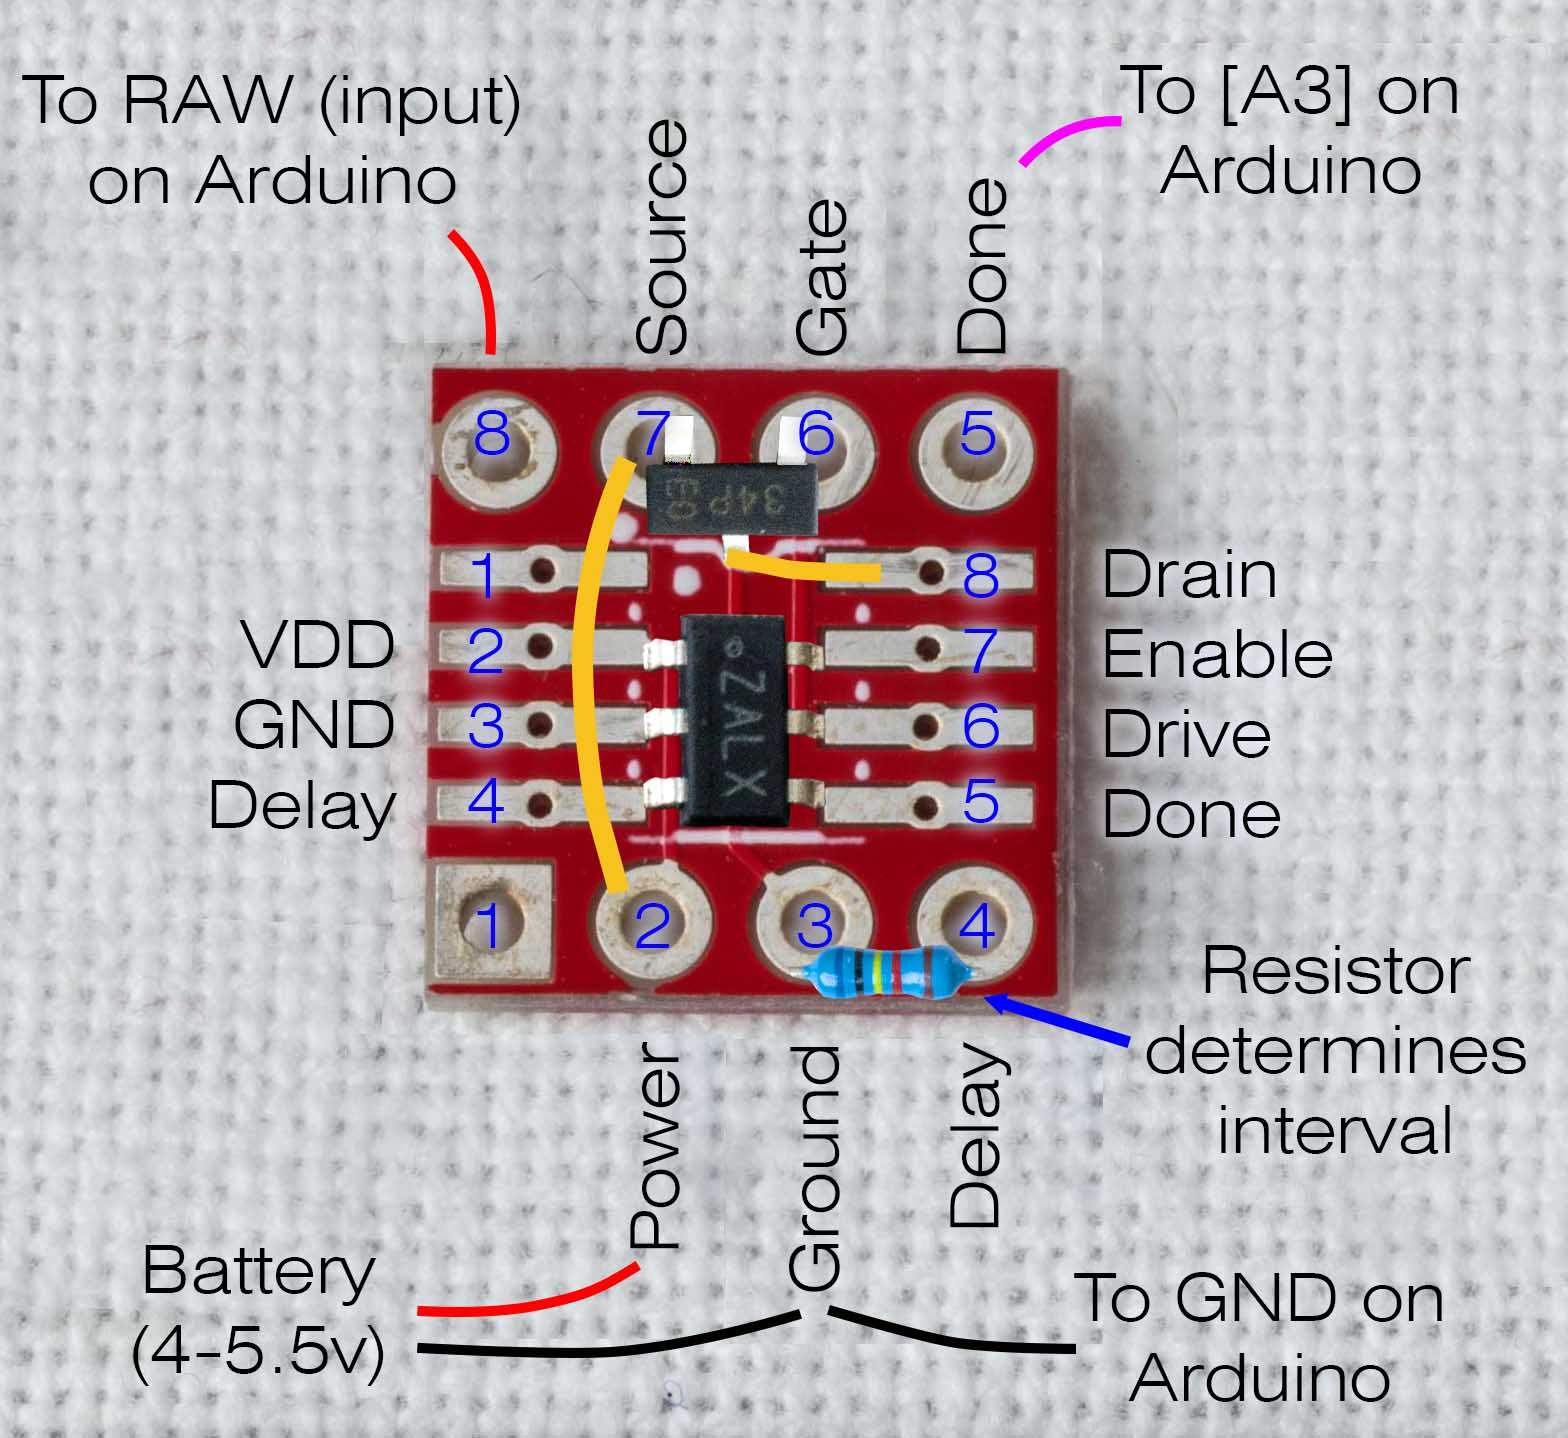 hight resolution of build diagram for log a long timer solder pads 1 8 connect with pcb copper traces to pin holes 1 8 respectively only number 1 is not used